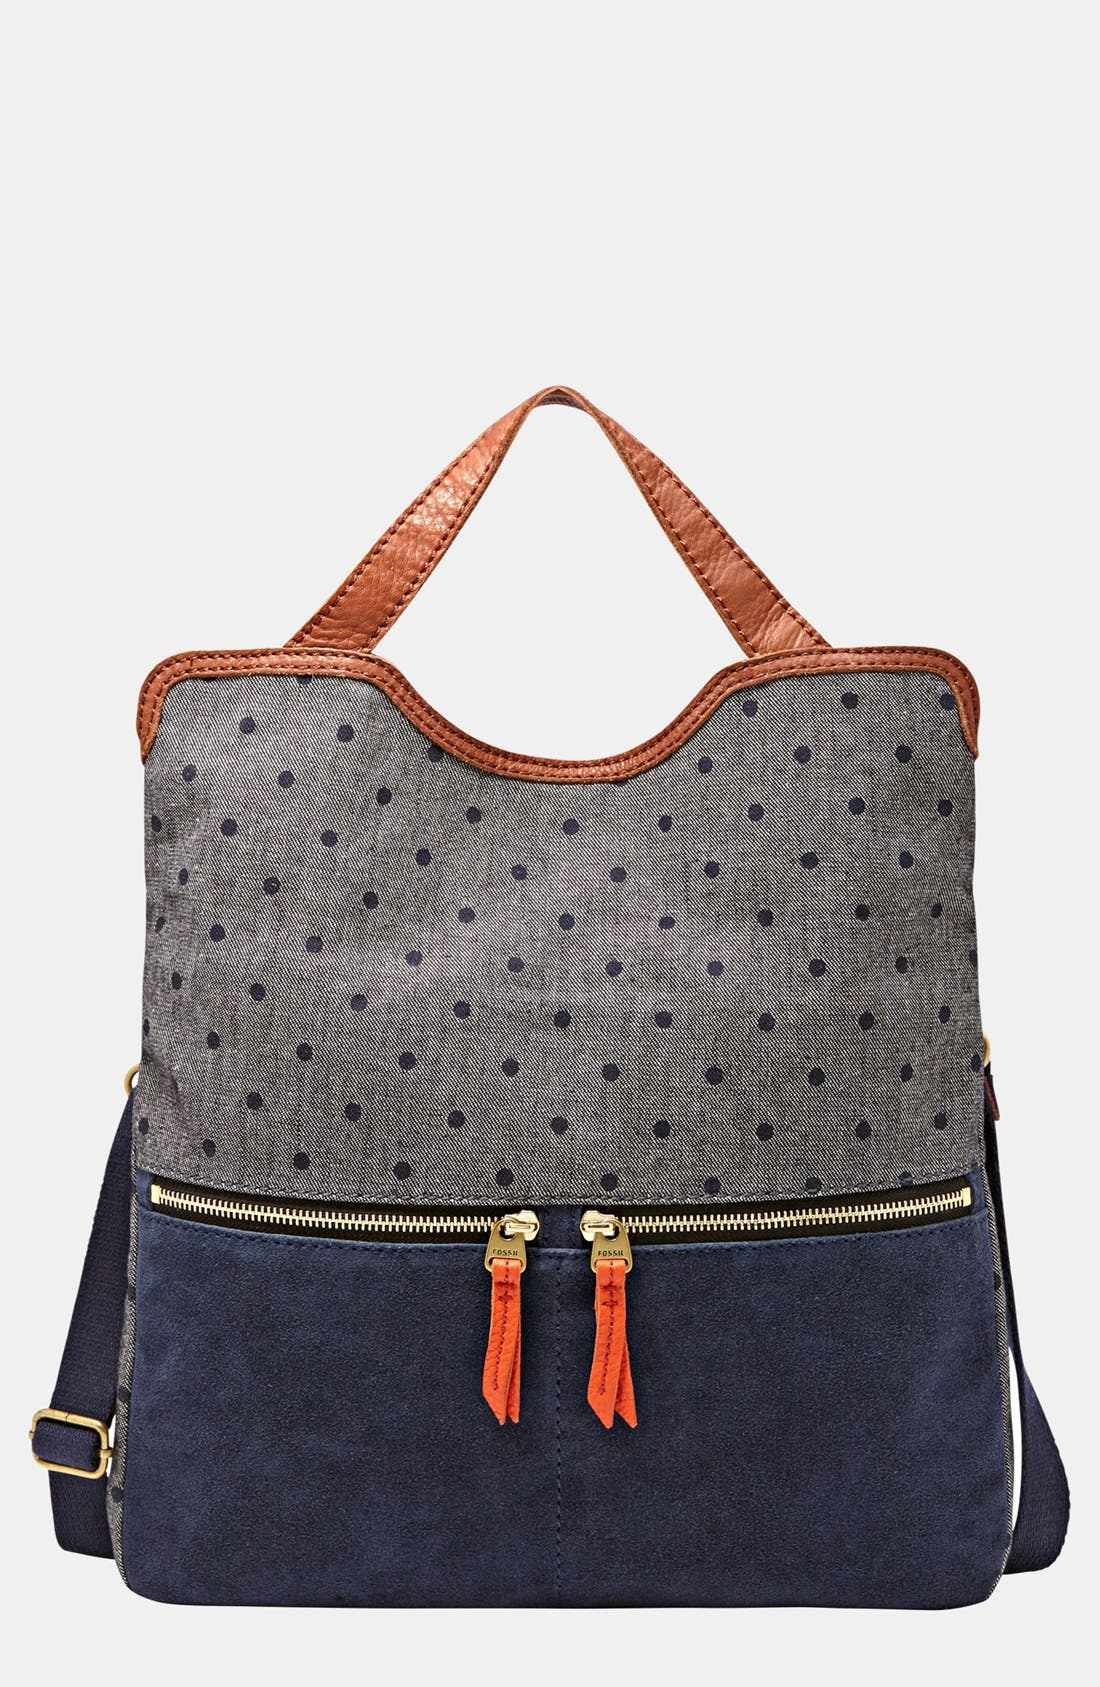 Alternate Image 1 Selected - Fossil 'Erin' Foldover Tote